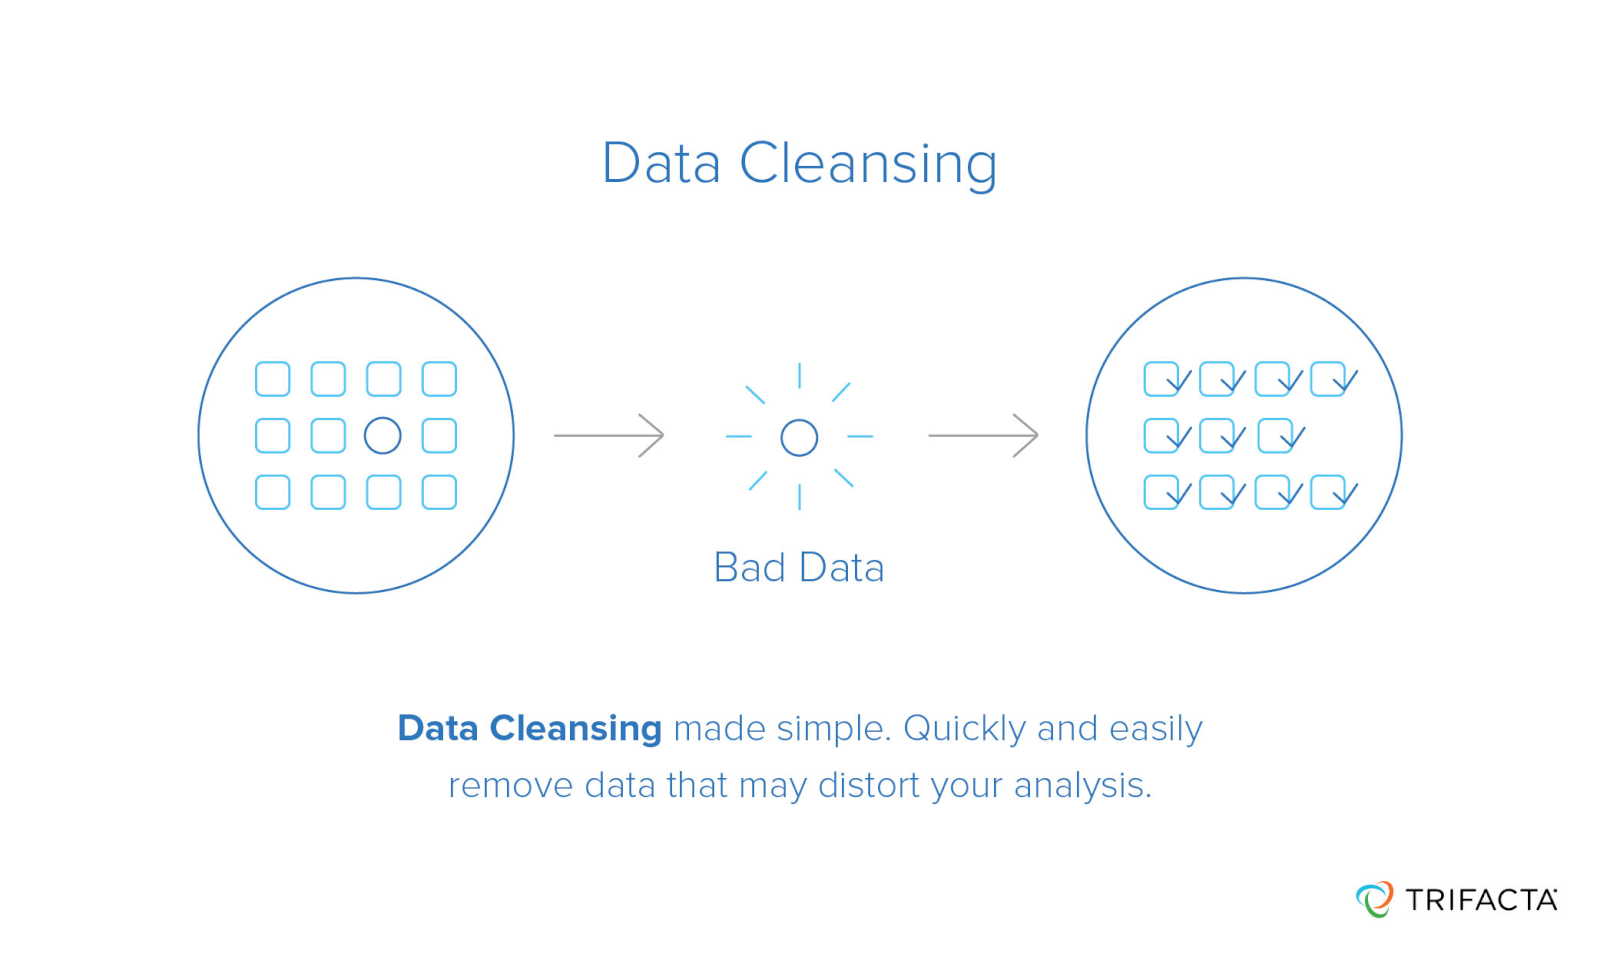 Data cleansing process to remove bad data for better analysis by businesses